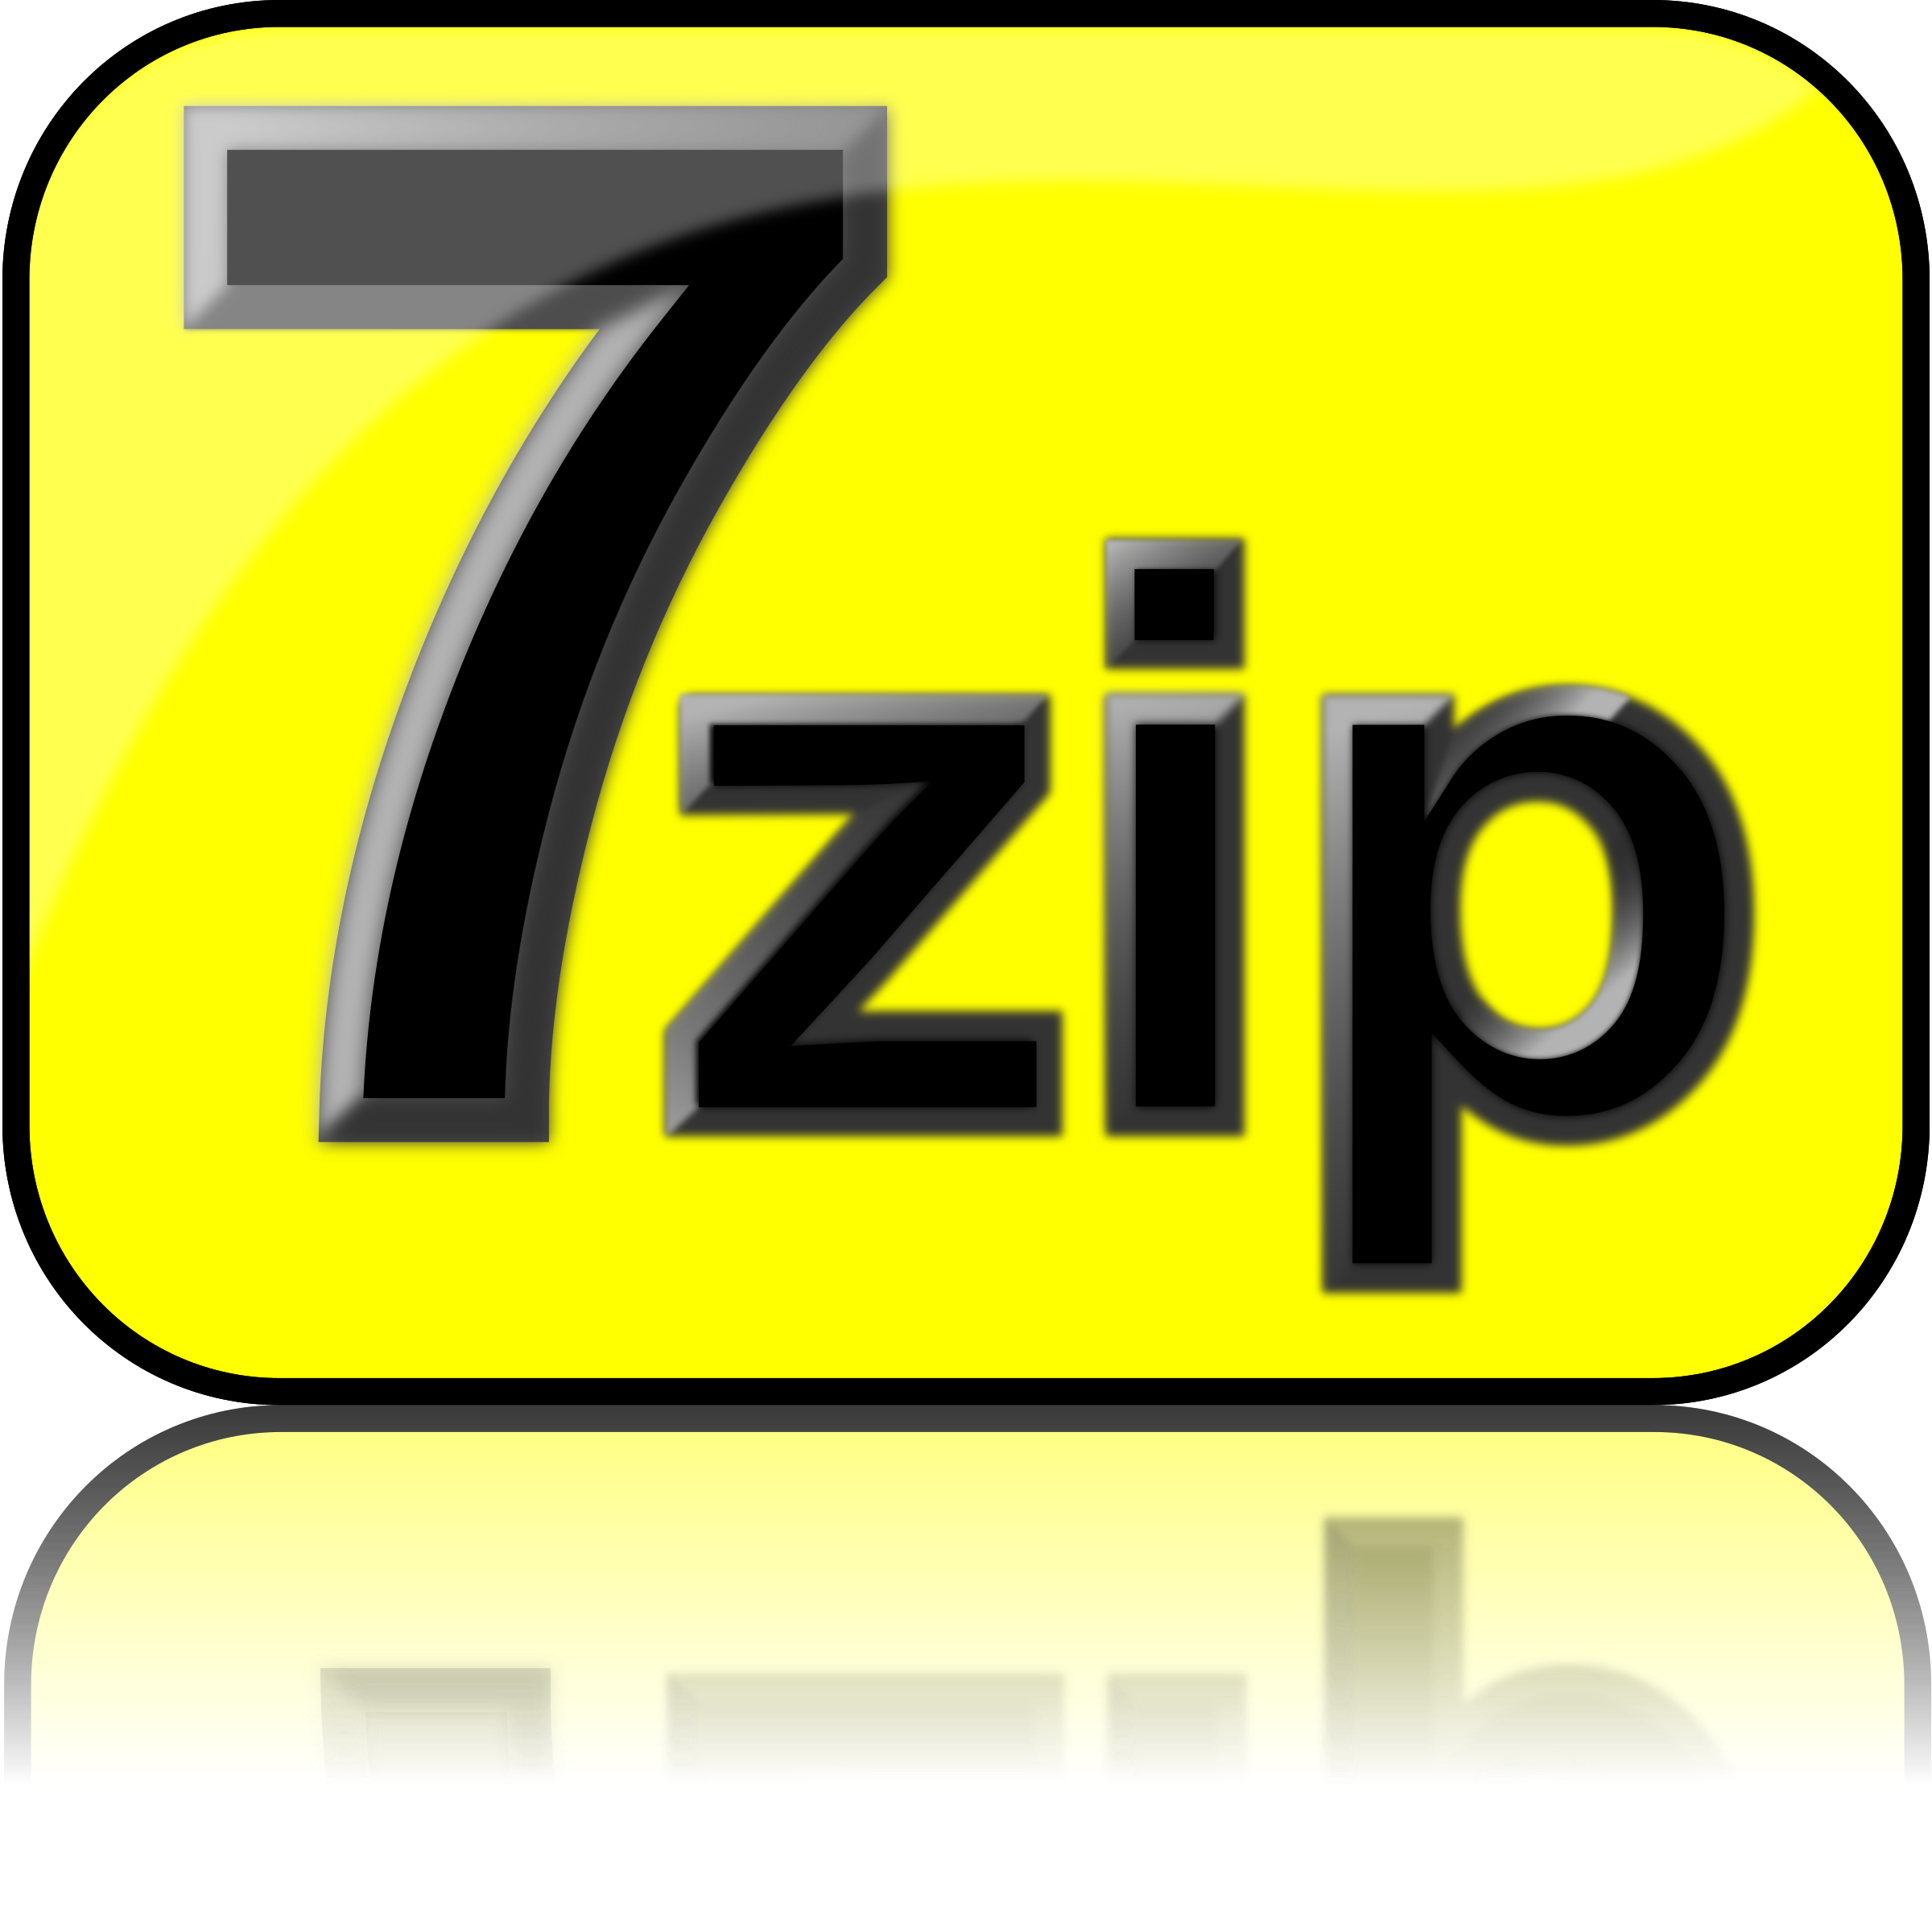 7zip Glossy Extrude Yellow by kg